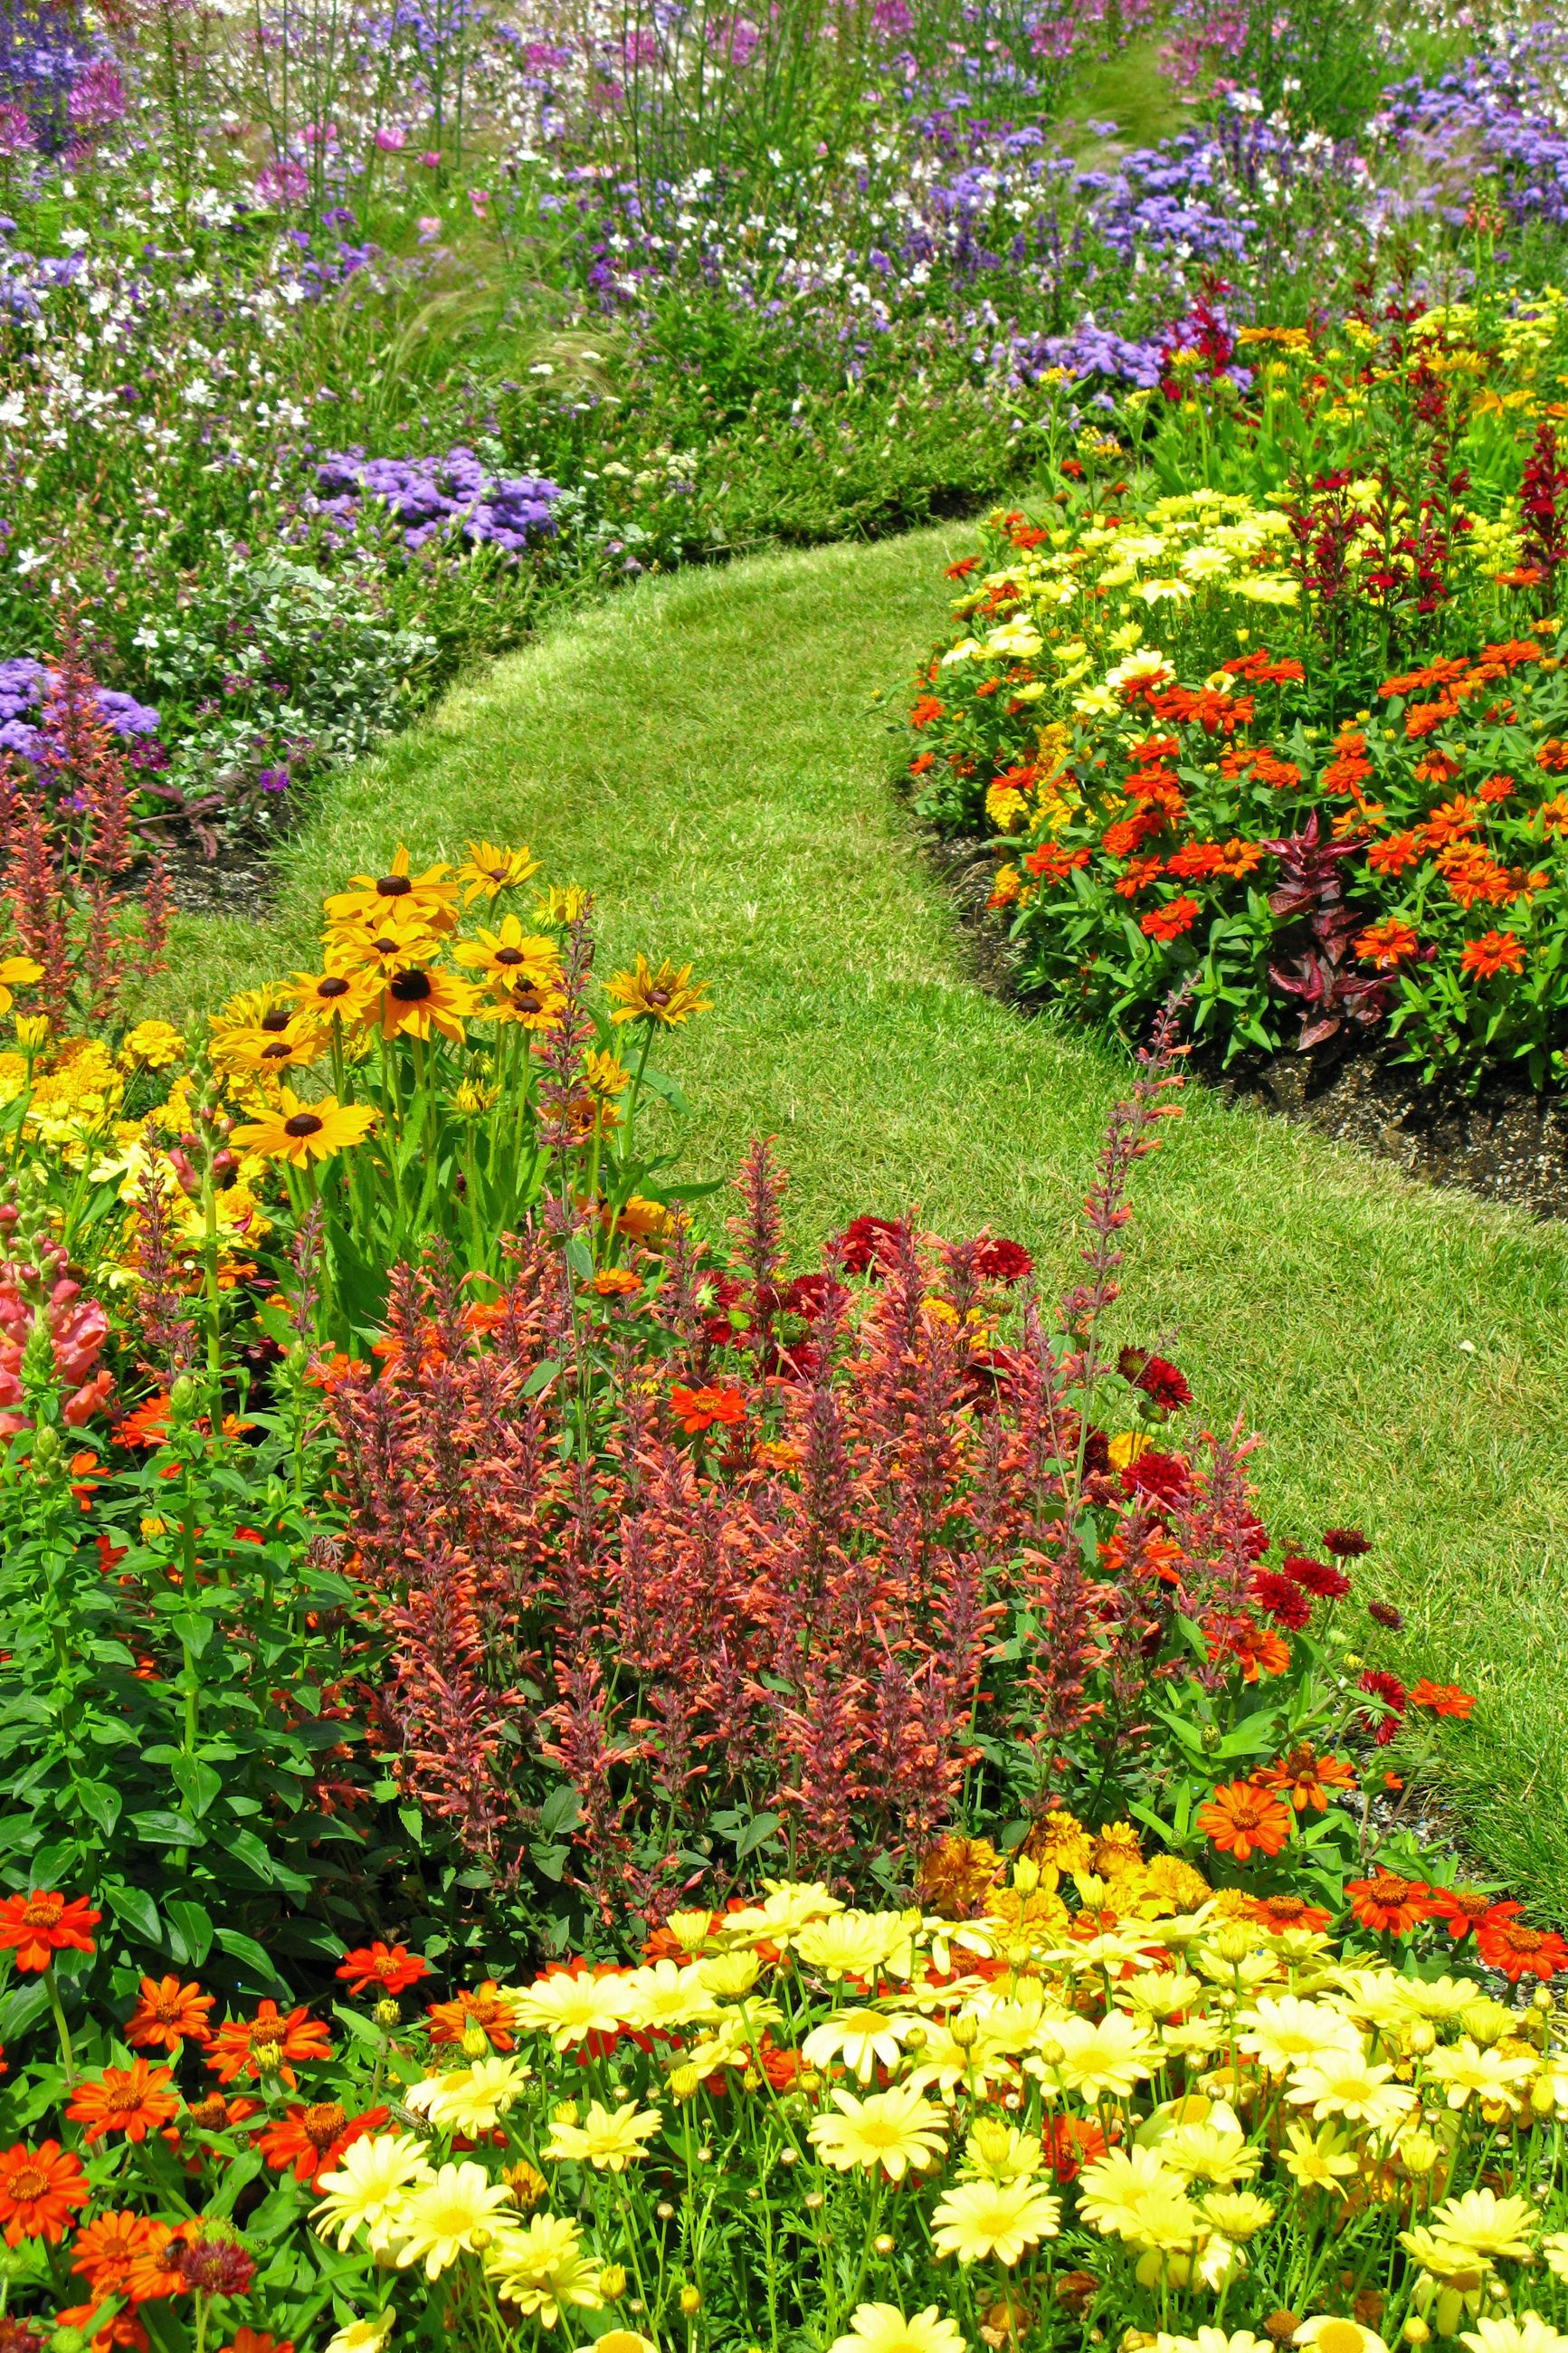 20 Best Yard Landscaping Ideas for Front and Backyard ... on Best Backyard Landscaping id=68728